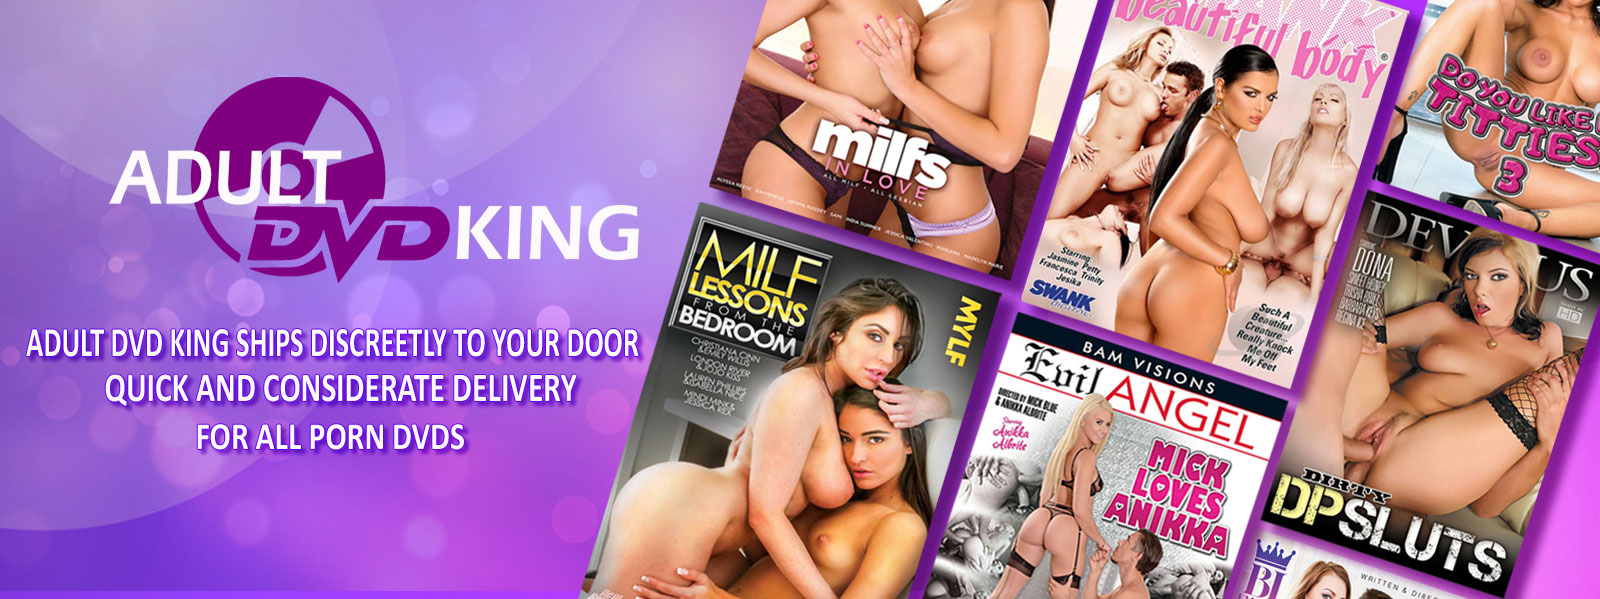 Adult DVD King ships discreetly to your door - quick and considerate delivery for all porn dvds